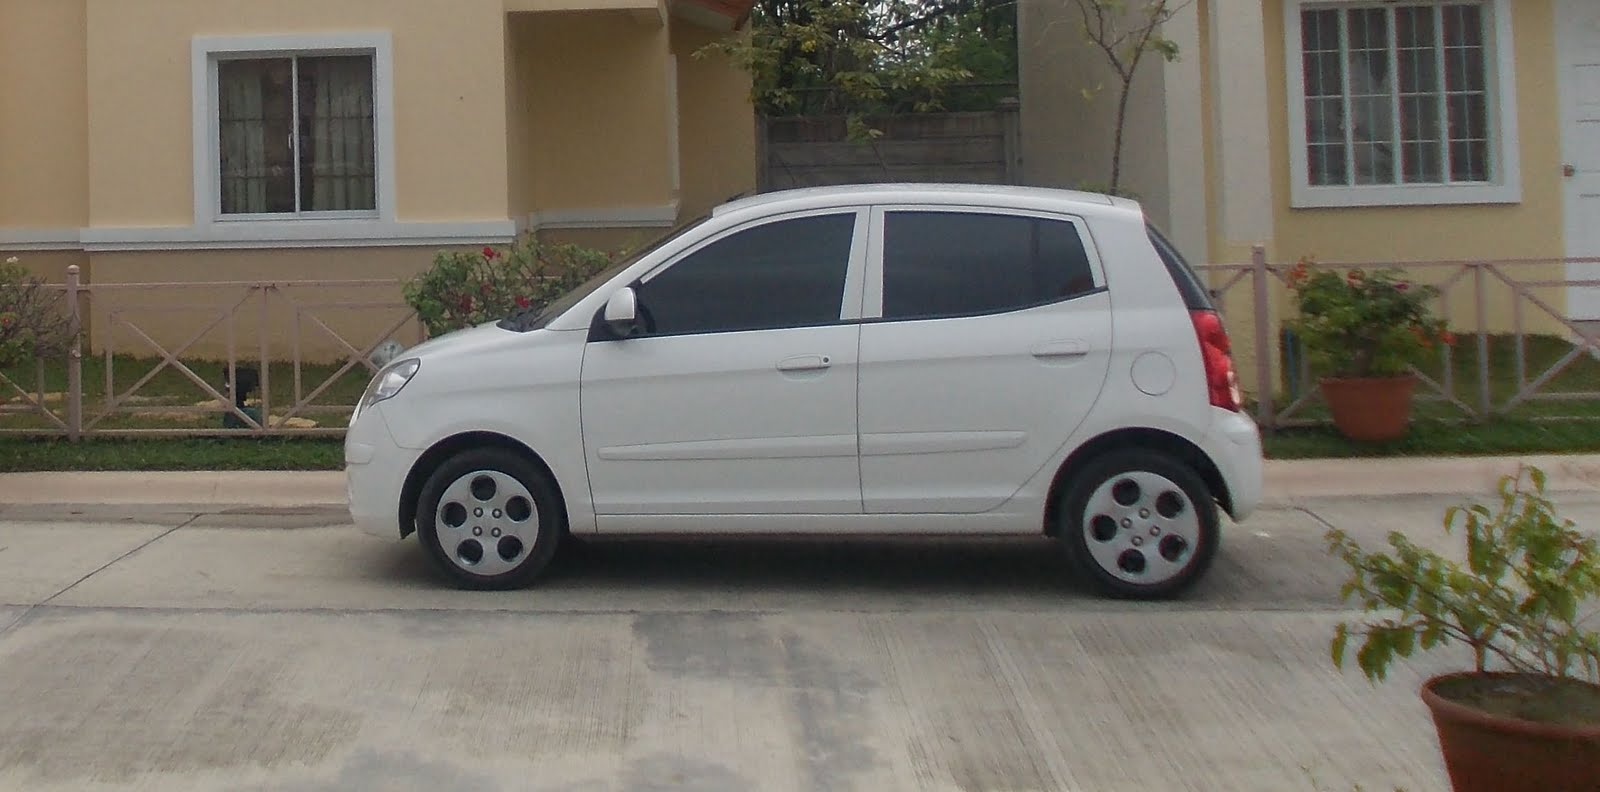 nicebalay for sale 2009 kia picanto all power very economical 1 liter runs 15 kilometers city. Black Bedroom Furniture Sets. Home Design Ideas